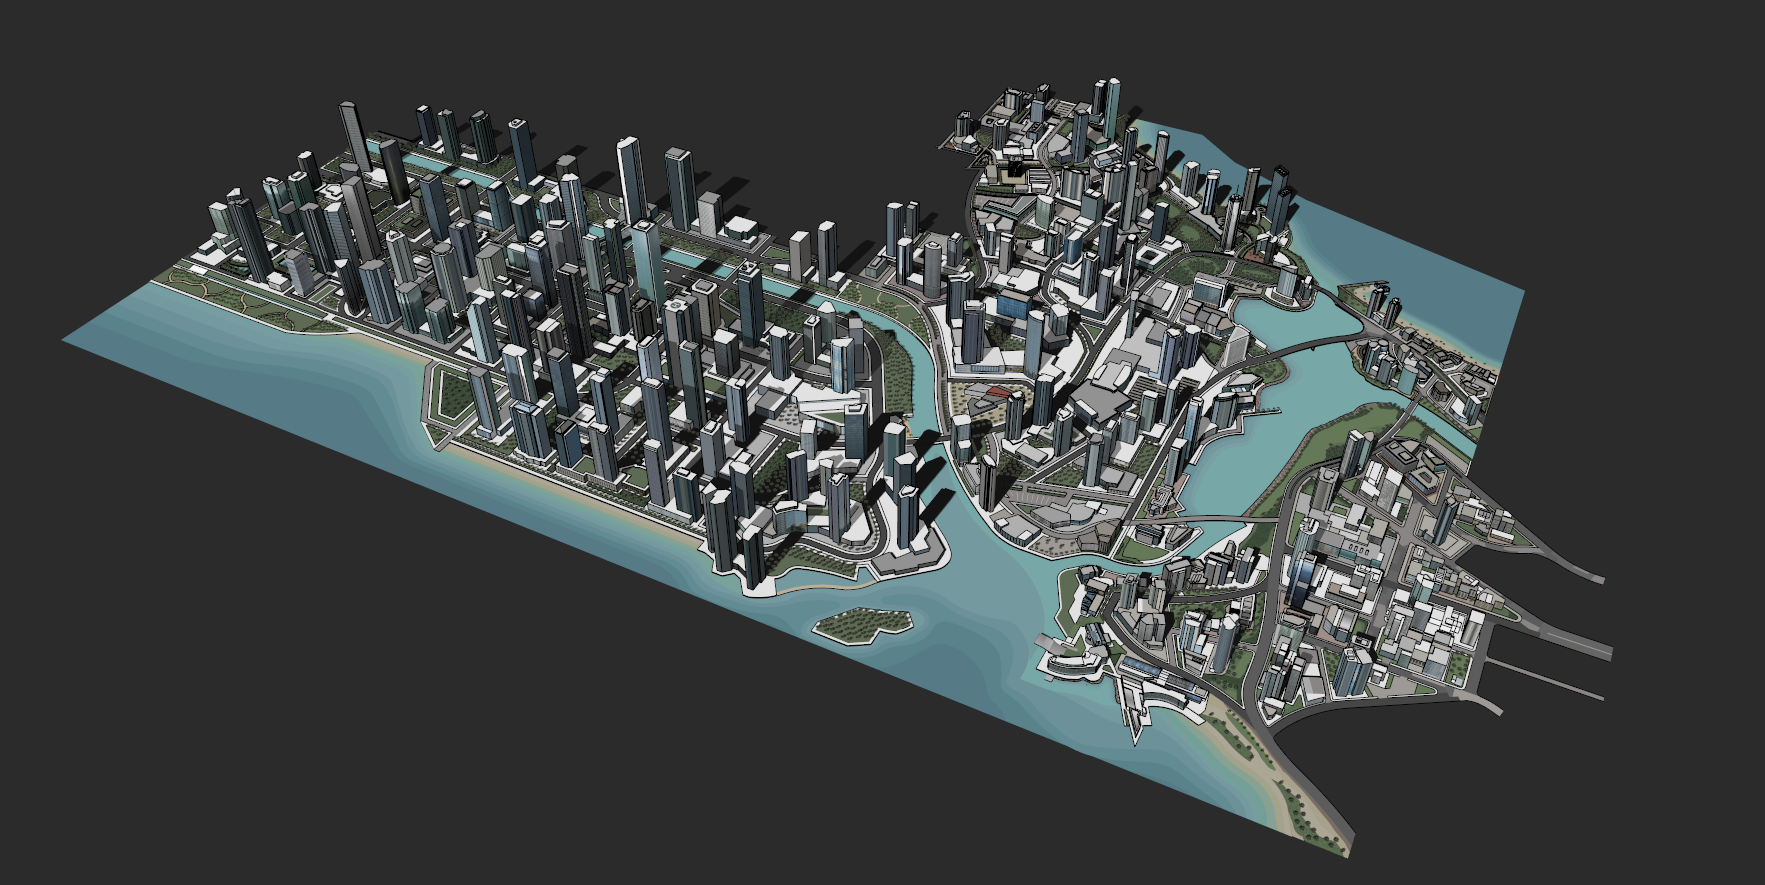 The LARGEST CITY in SketchUp